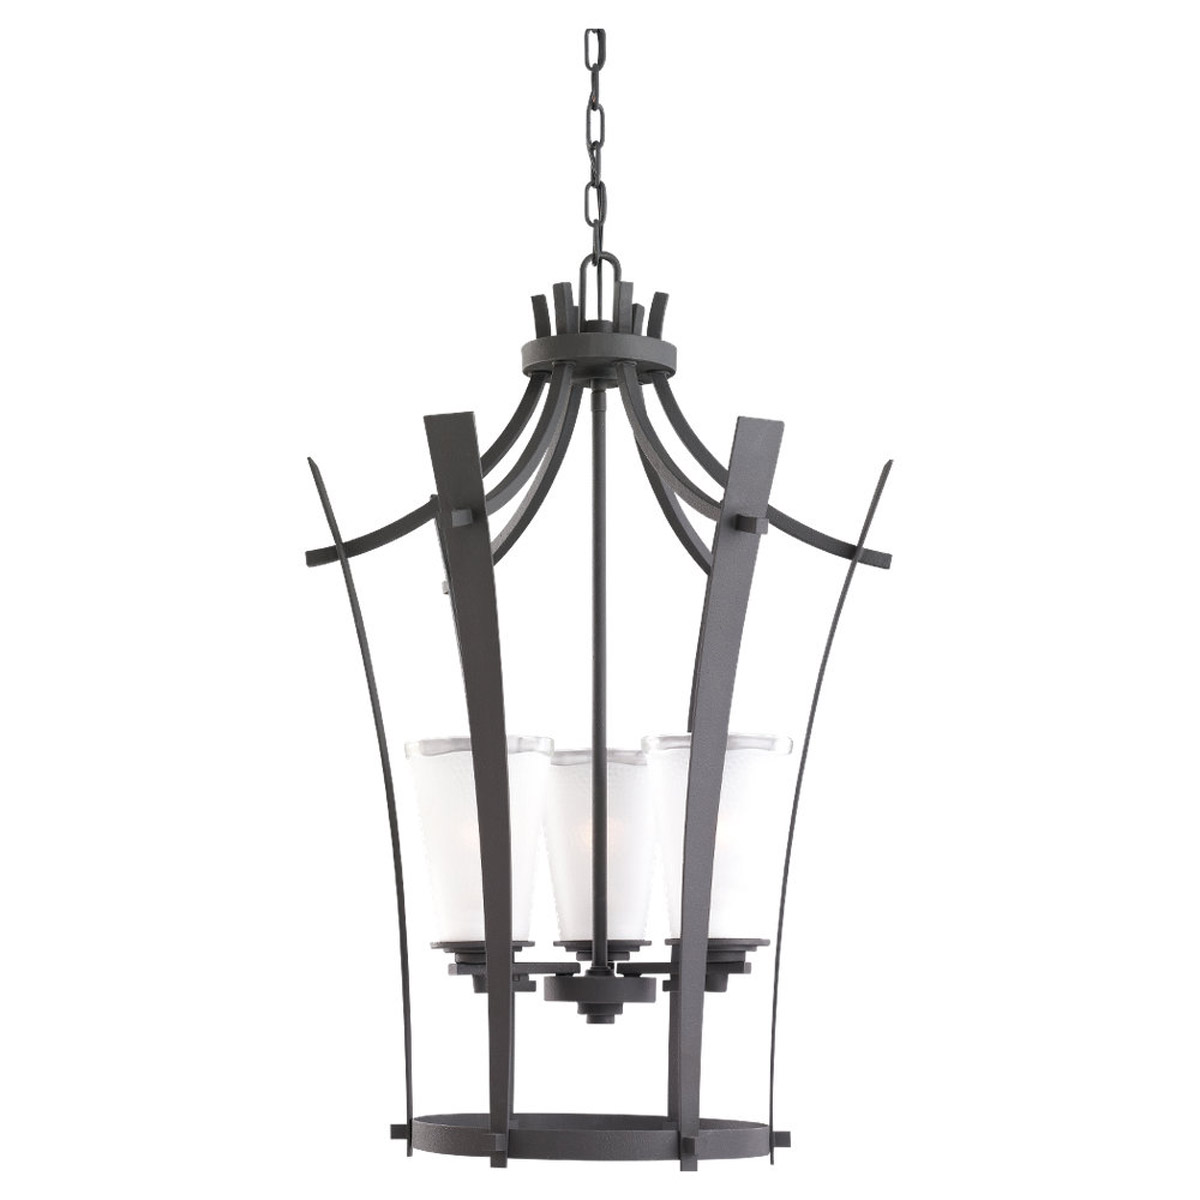 Sea Gull Lighting 59th Street 3 Light Hall / Foyer Pendant in Blacksmith 51640-839 photo